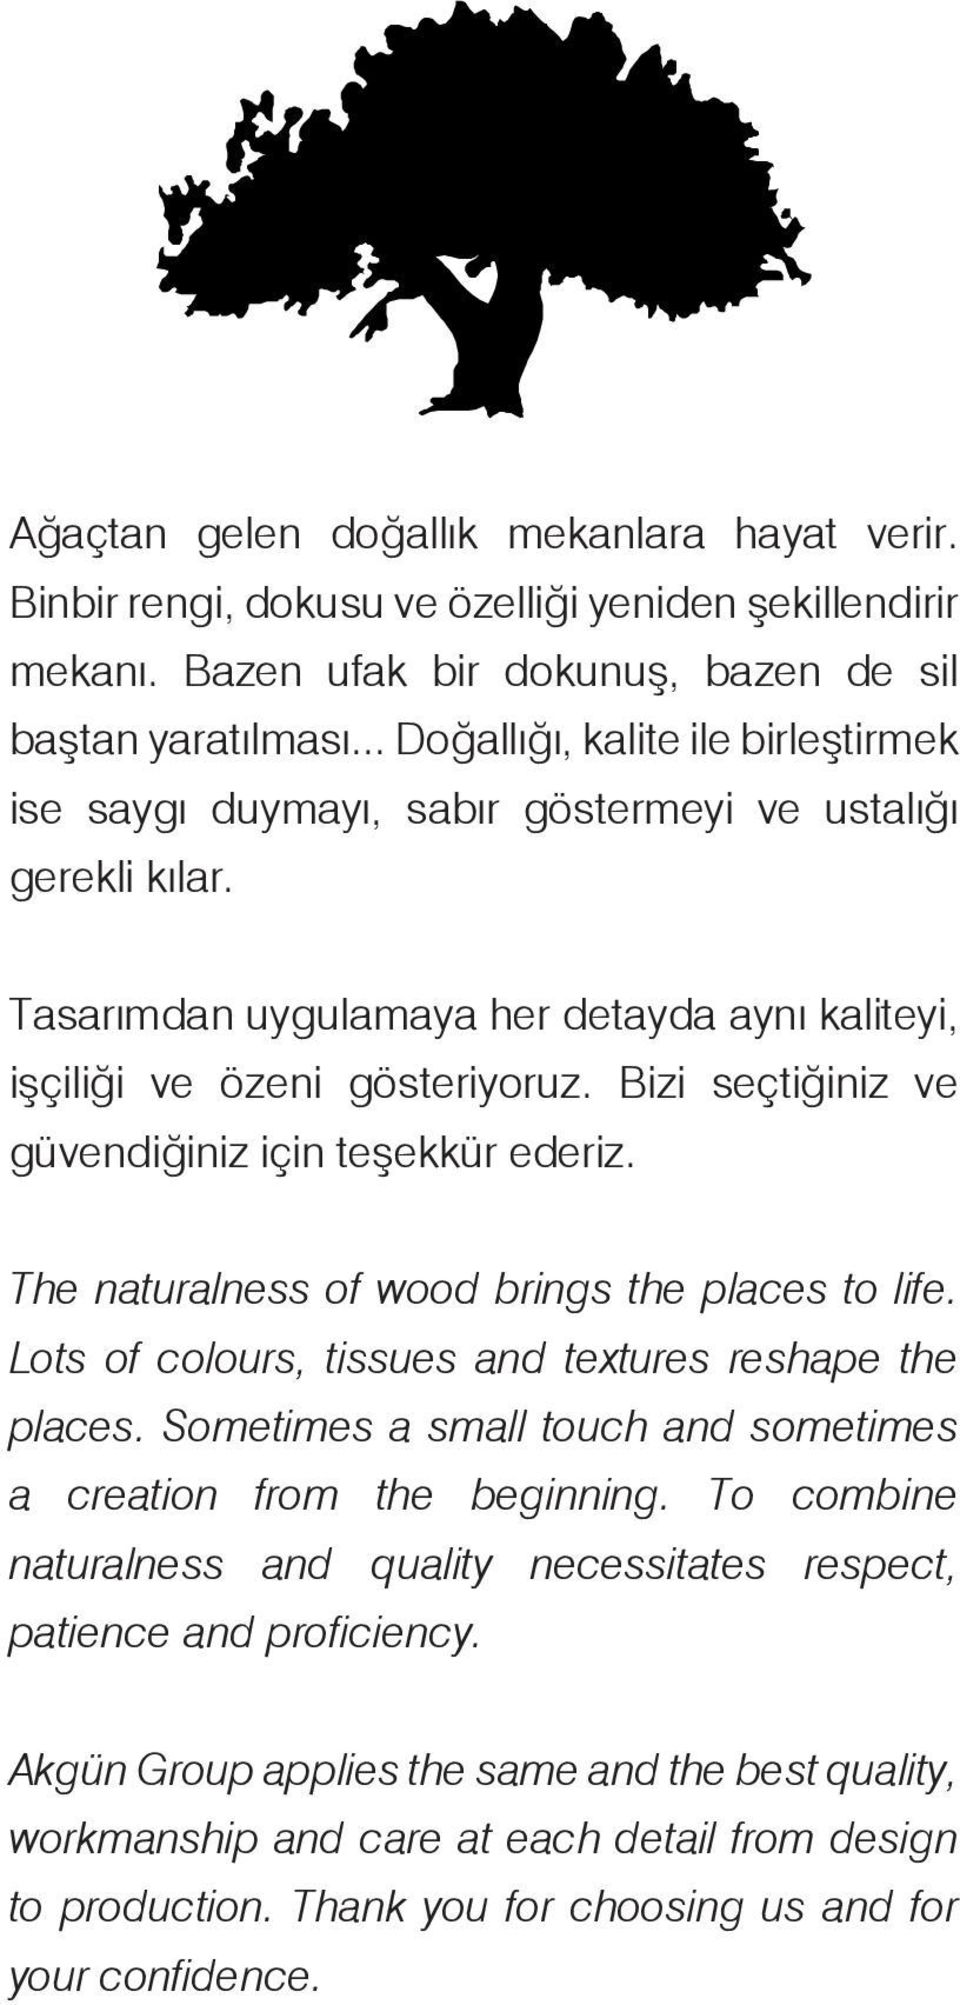 Bizi seçtiğiniz ve güvendiğiniz için teşekkür ederiz. The naturalness of wood brings the places to life. Lots of colours, tissues and textures reshape the places.